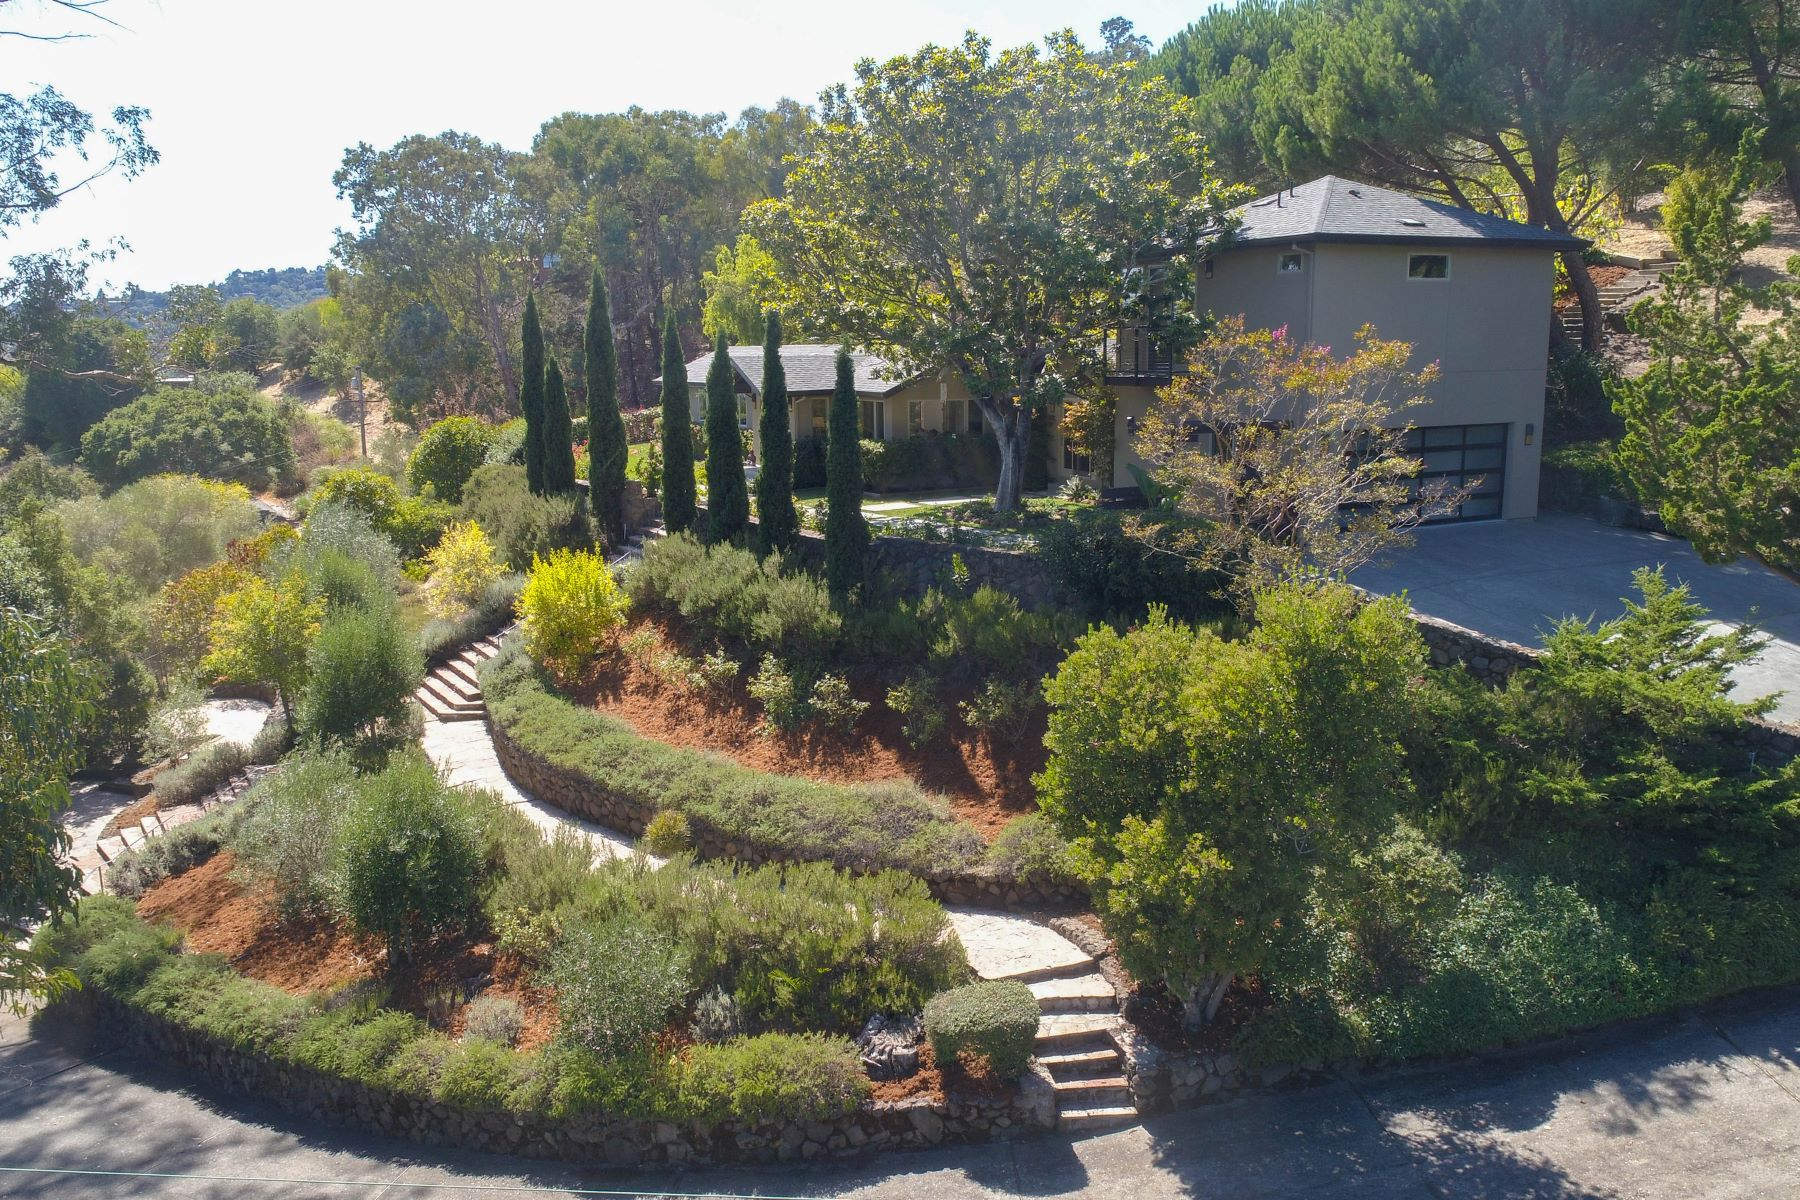 Single Family Homes for Sale at Estate Home on an Acre with Postcard Views 33 Pigeon Hollow Rd San Rafael, California 94901 United States